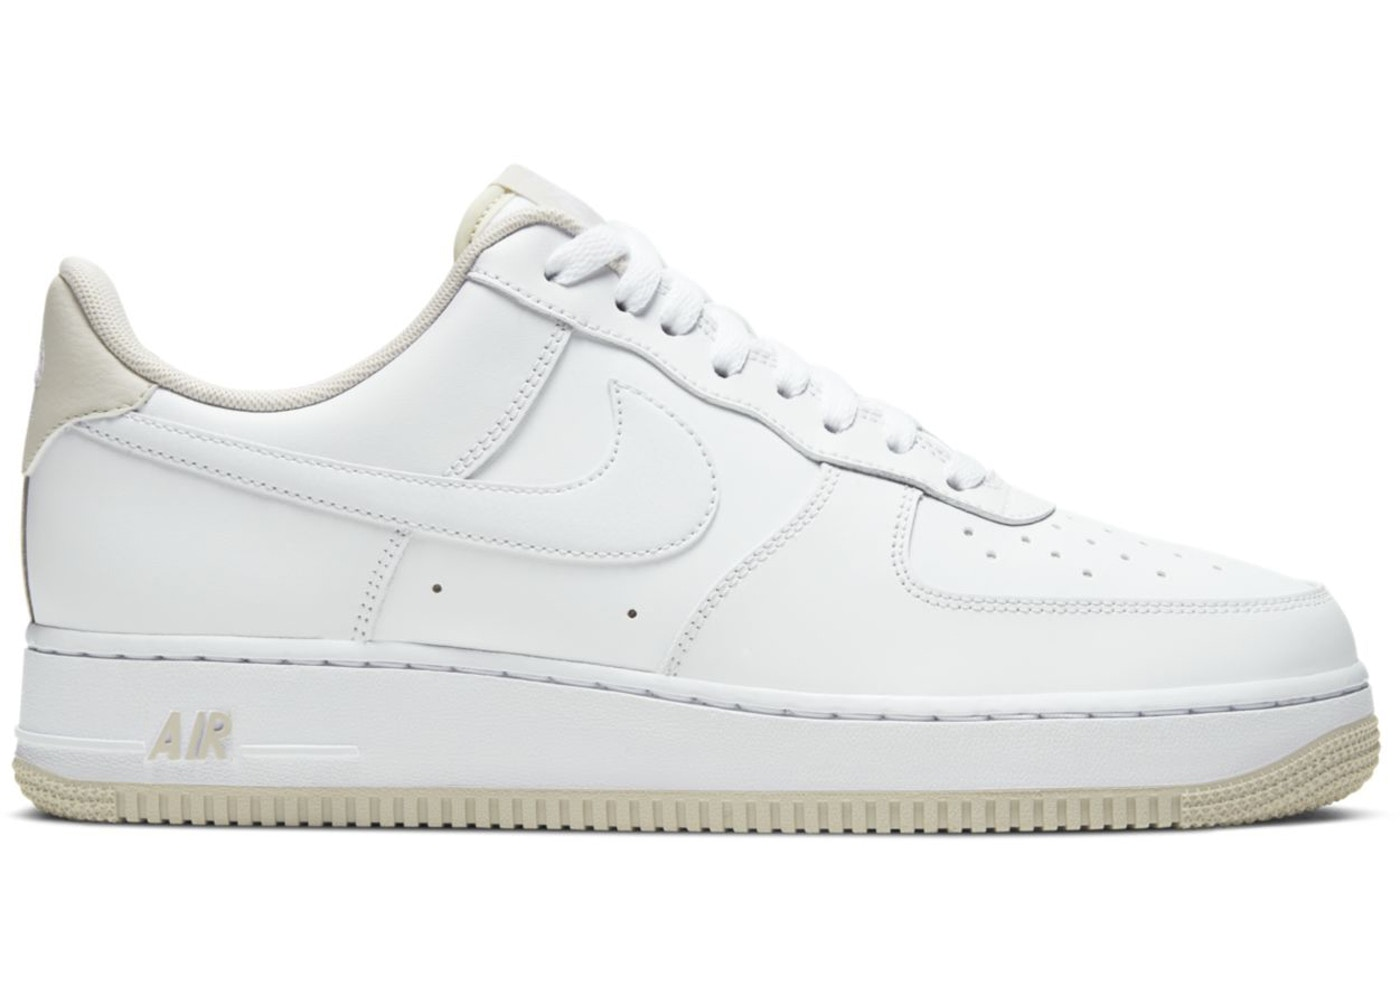 Limón Ropa Fanático  Nike Air Force 1 '07 White Light Bone - CJ1380-101